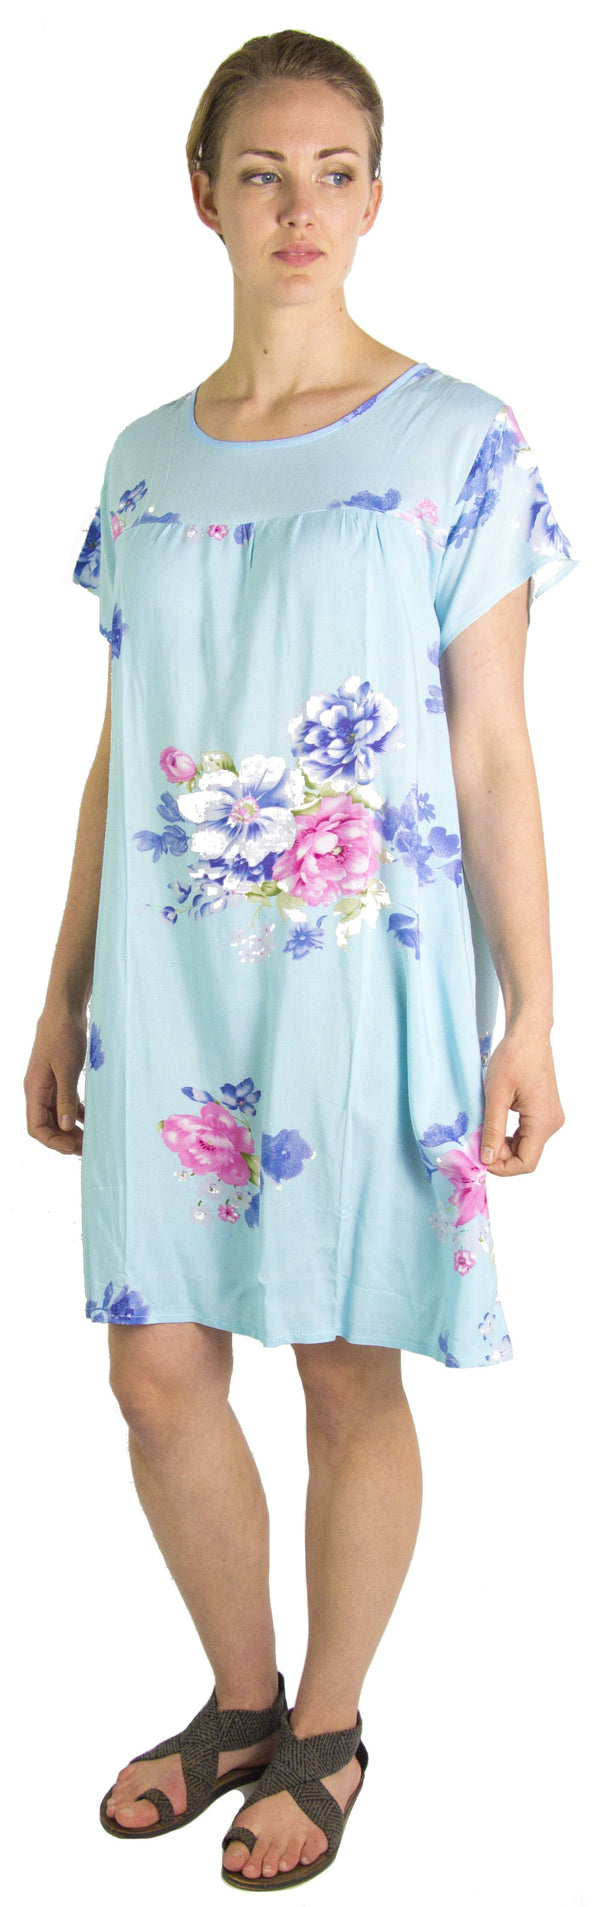 Sakkas Aila Women Summer Casual Short Sleeve Flowy Cover up Dress Floral Print#color_Baby Blue